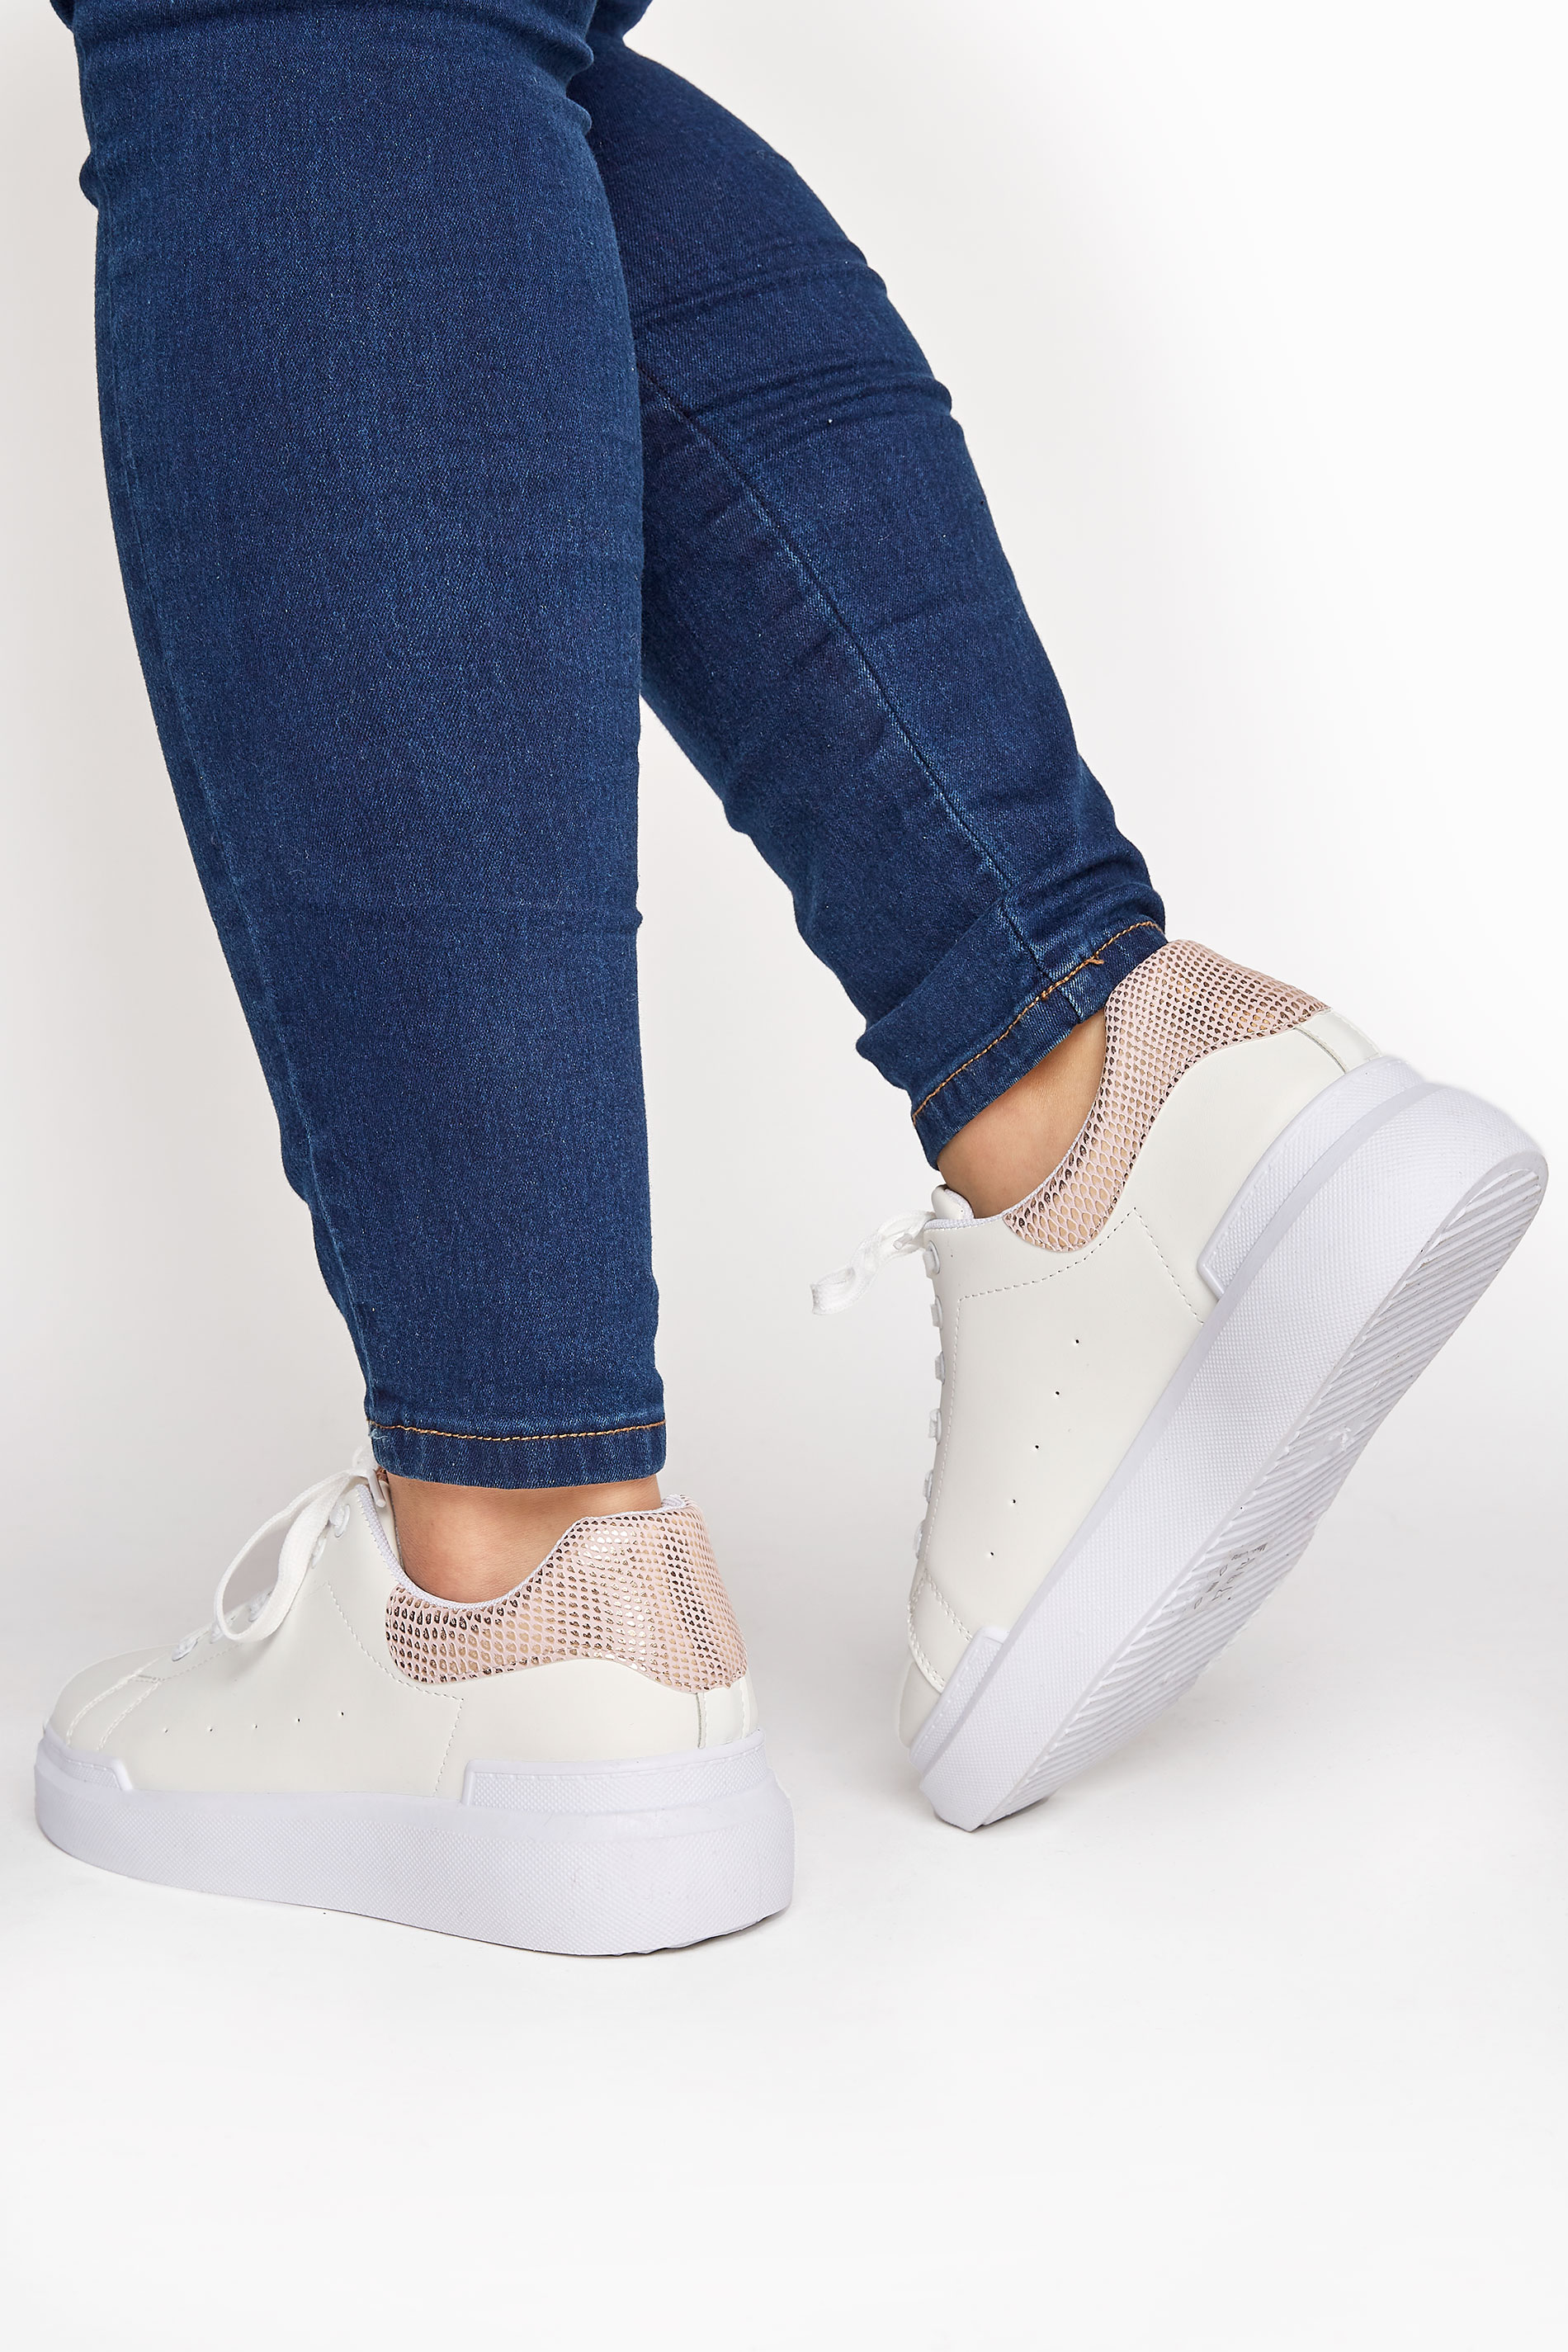 LIMITED COLLECTION White and Rose Gold Flatform Trainer In Wide Fit